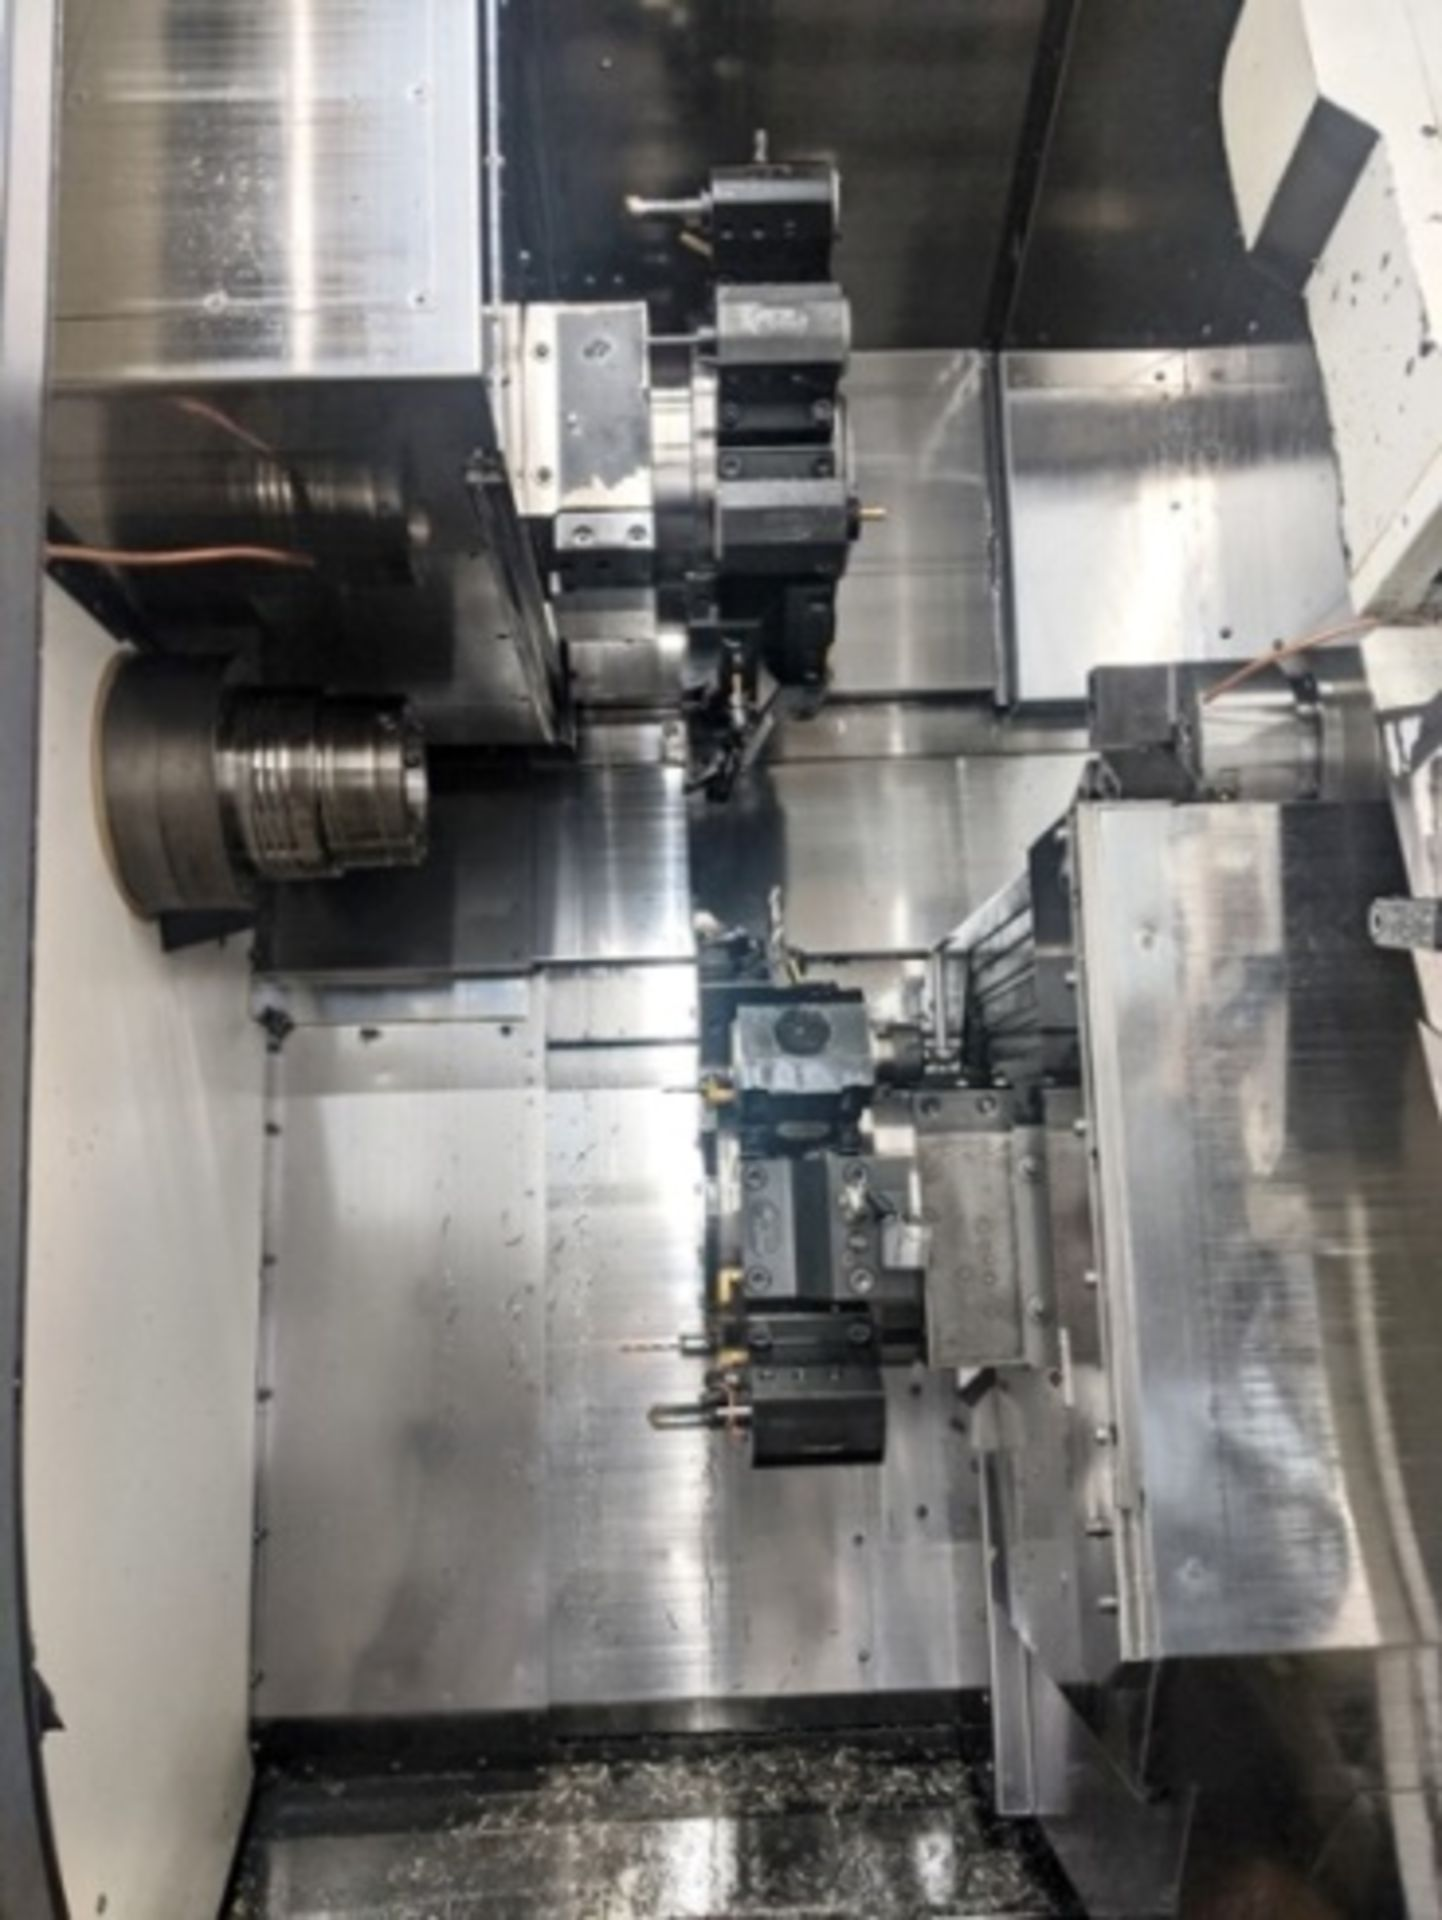 """Lot 1 - 2011 NAKAMURA TOME WY-250MMYY CNC TURNING CENTER, 10"""" CHUCK, 2.5"""" BAR CAPACITY, FANUC 31IT CNC CONTR"""